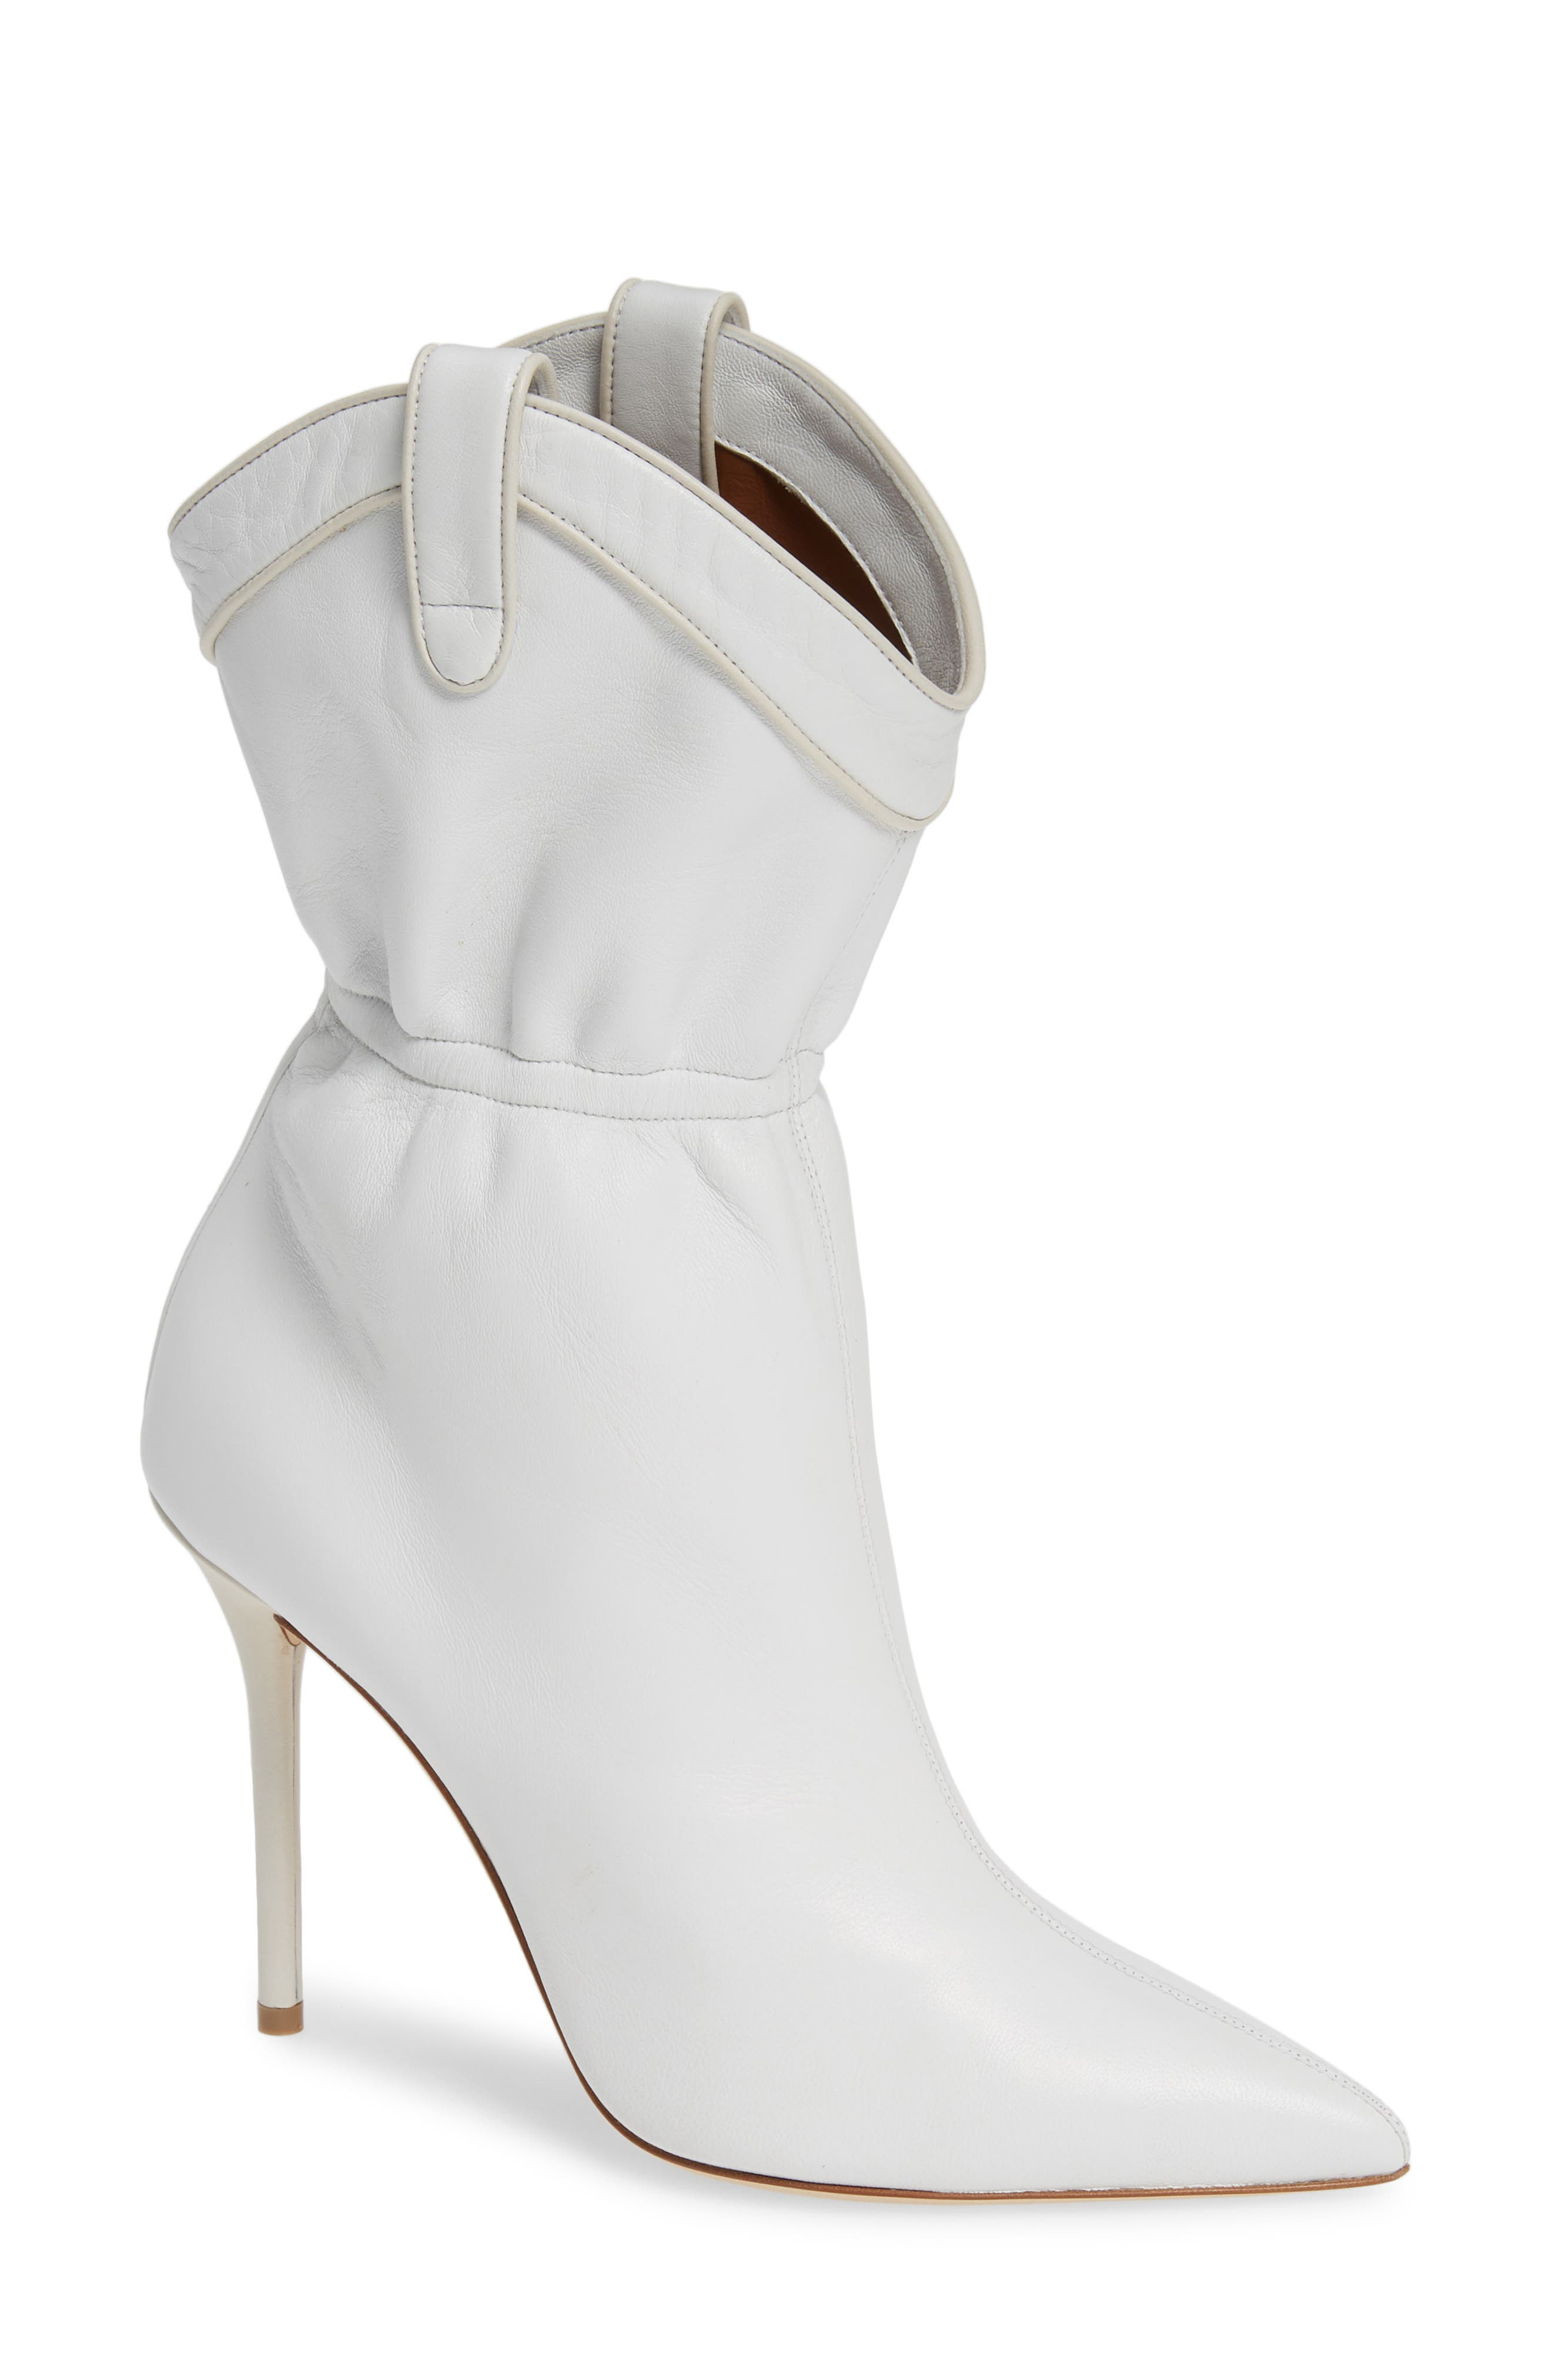 MALONE SOULIERS Daisy Cinched Bootie, Main, color, WHITE LEATHER